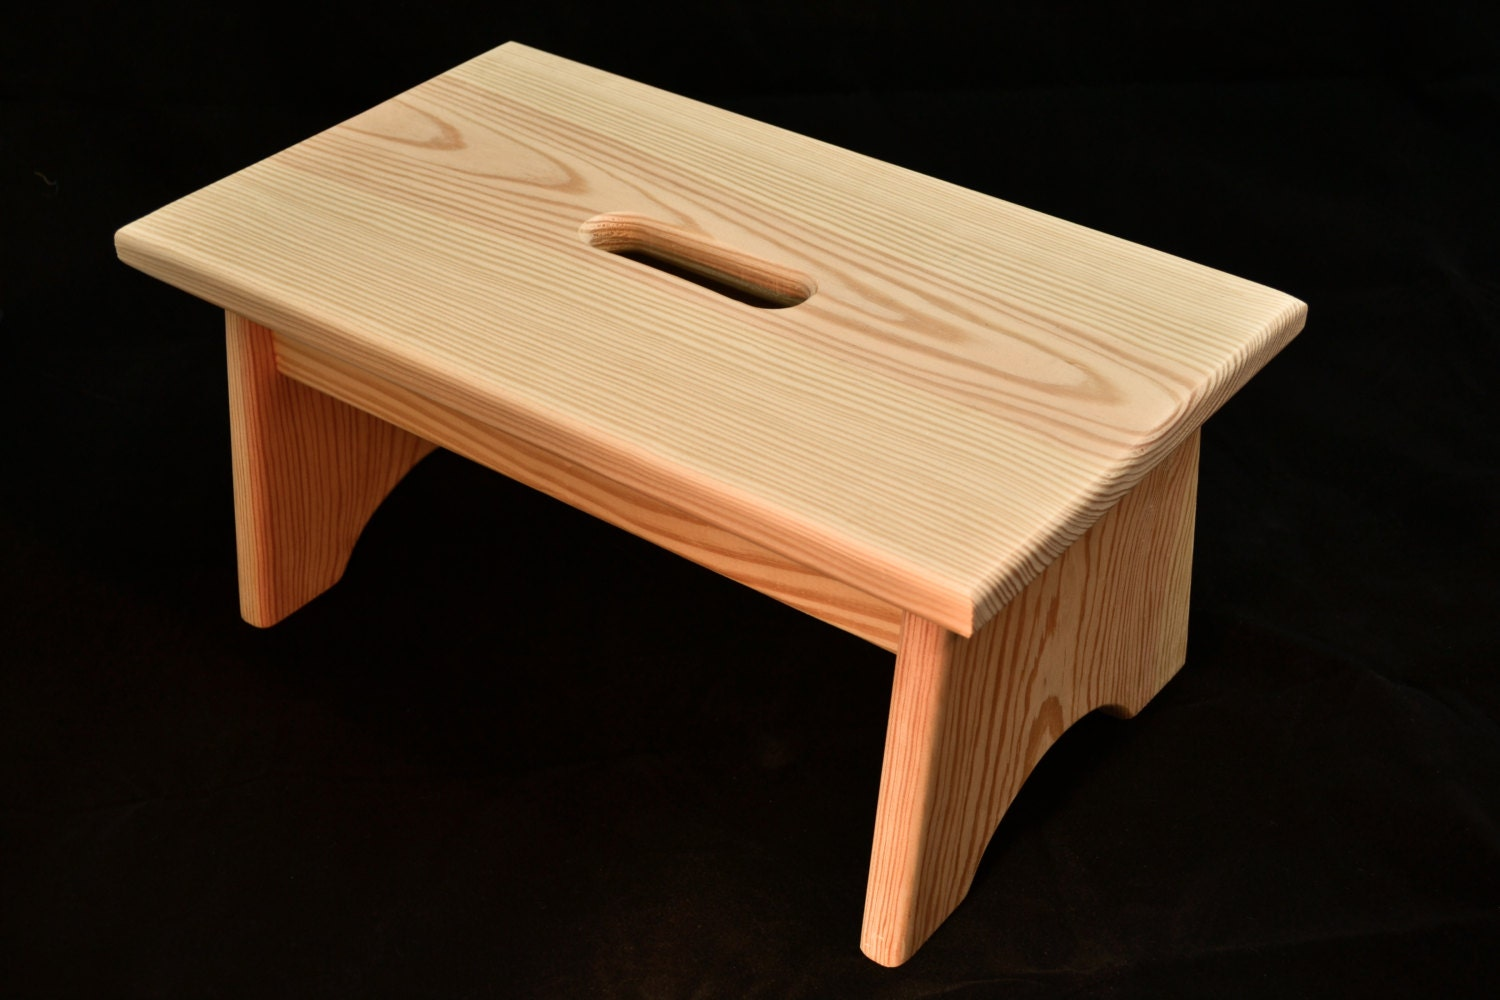 Wood Step Stool With Handle Hole Unfinished Pine 16l X